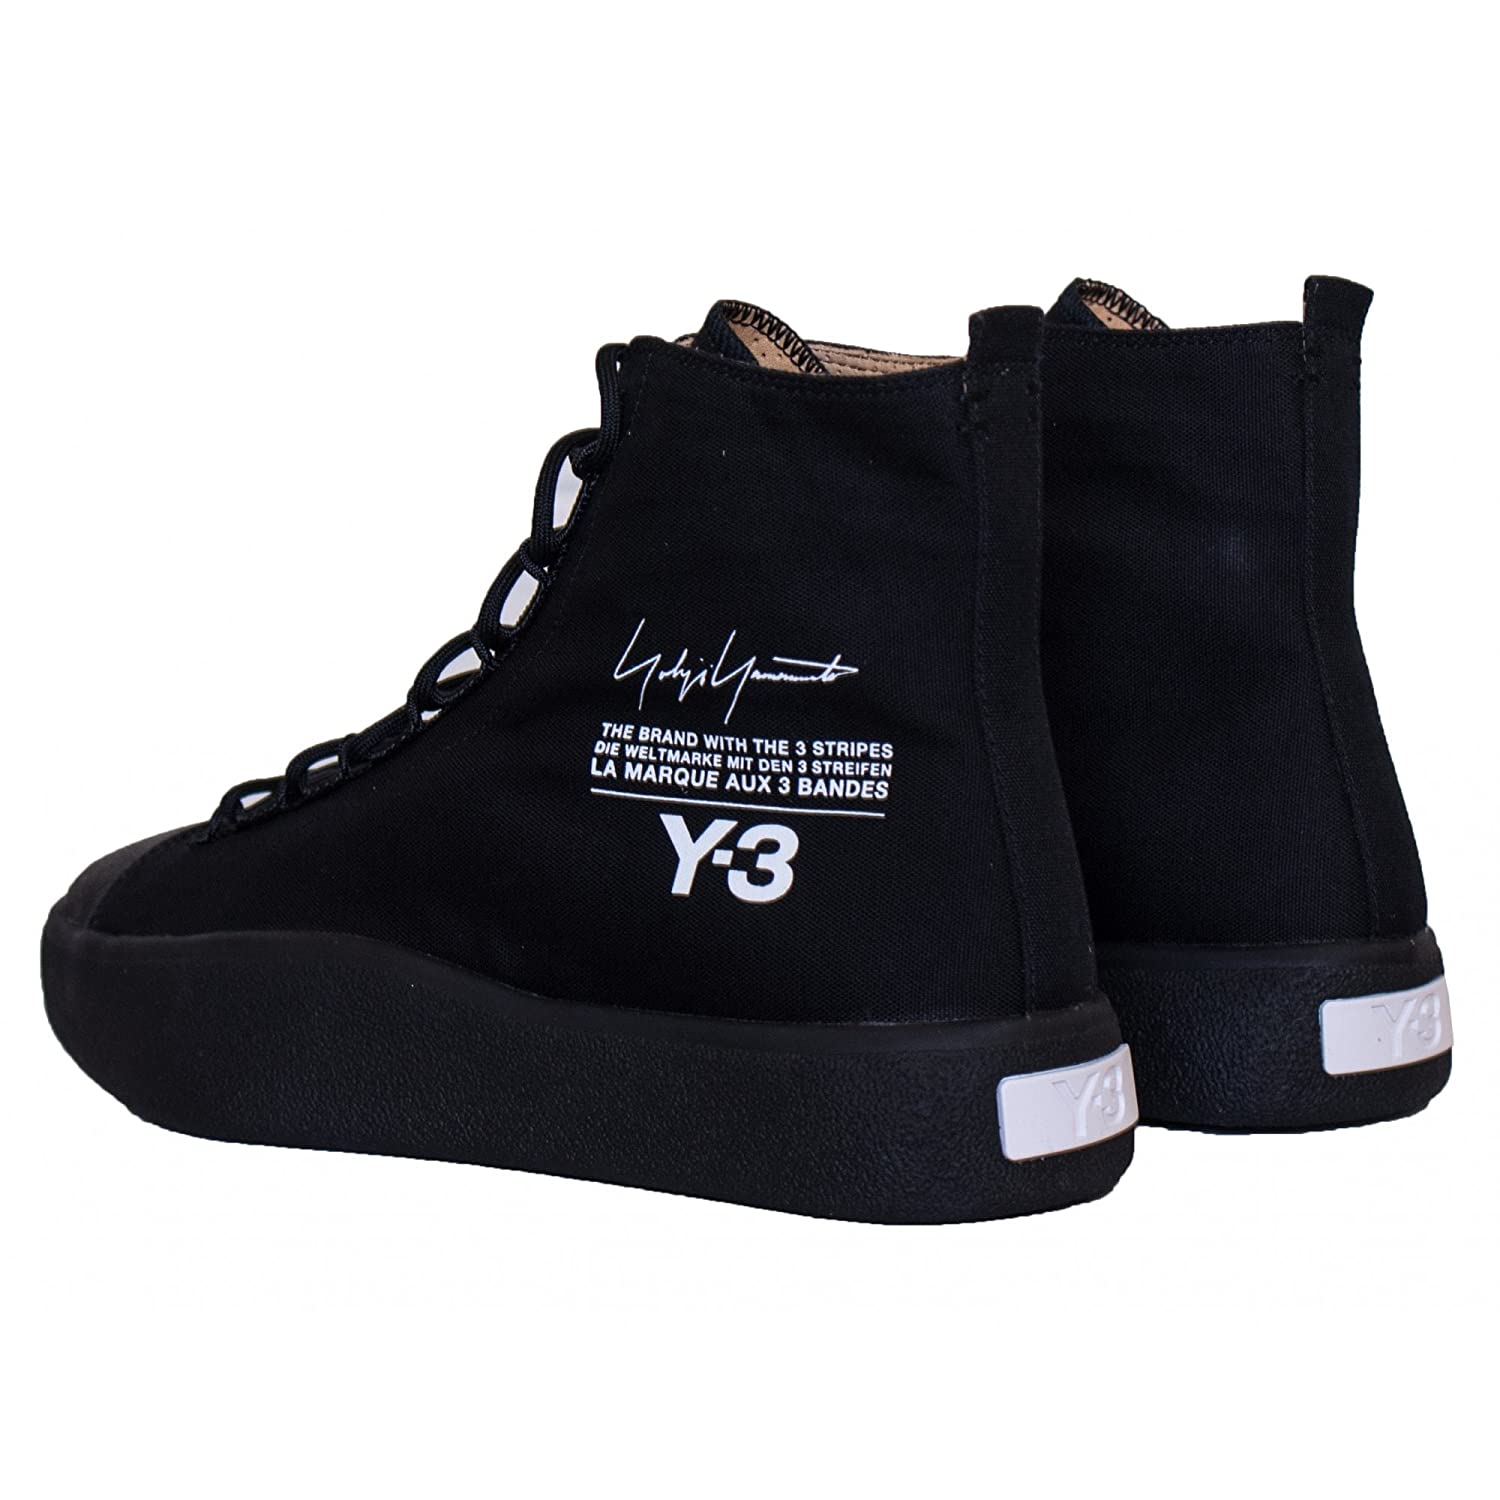 free shipping 0363e 6477b adidas Y-3 Bashyo Black UK 10: Amazon.co.uk: Shoes & Bags